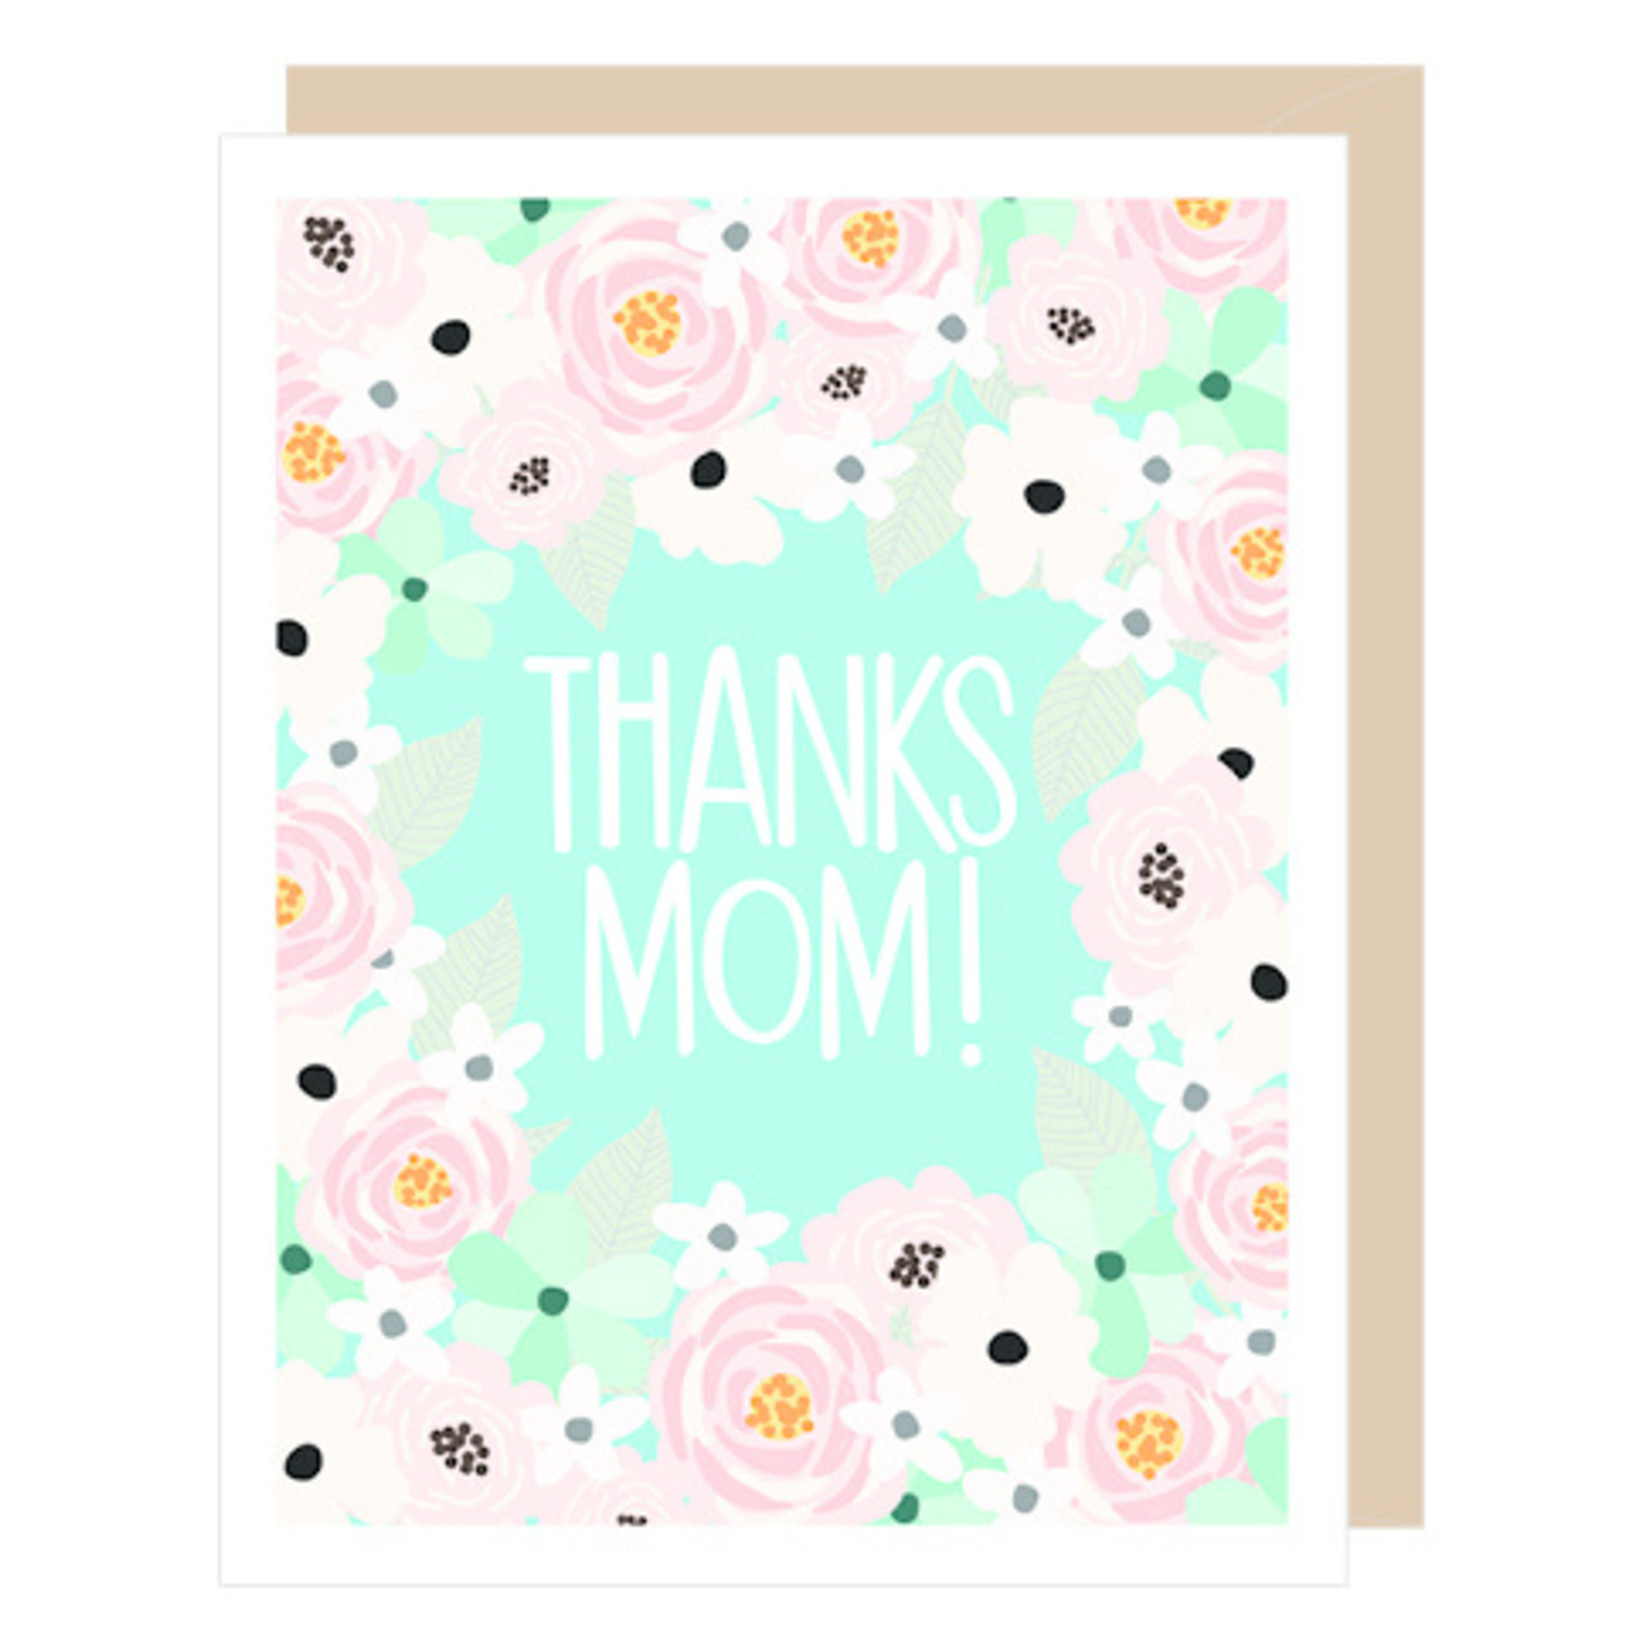 Mother's Day: Thanks, Mom!